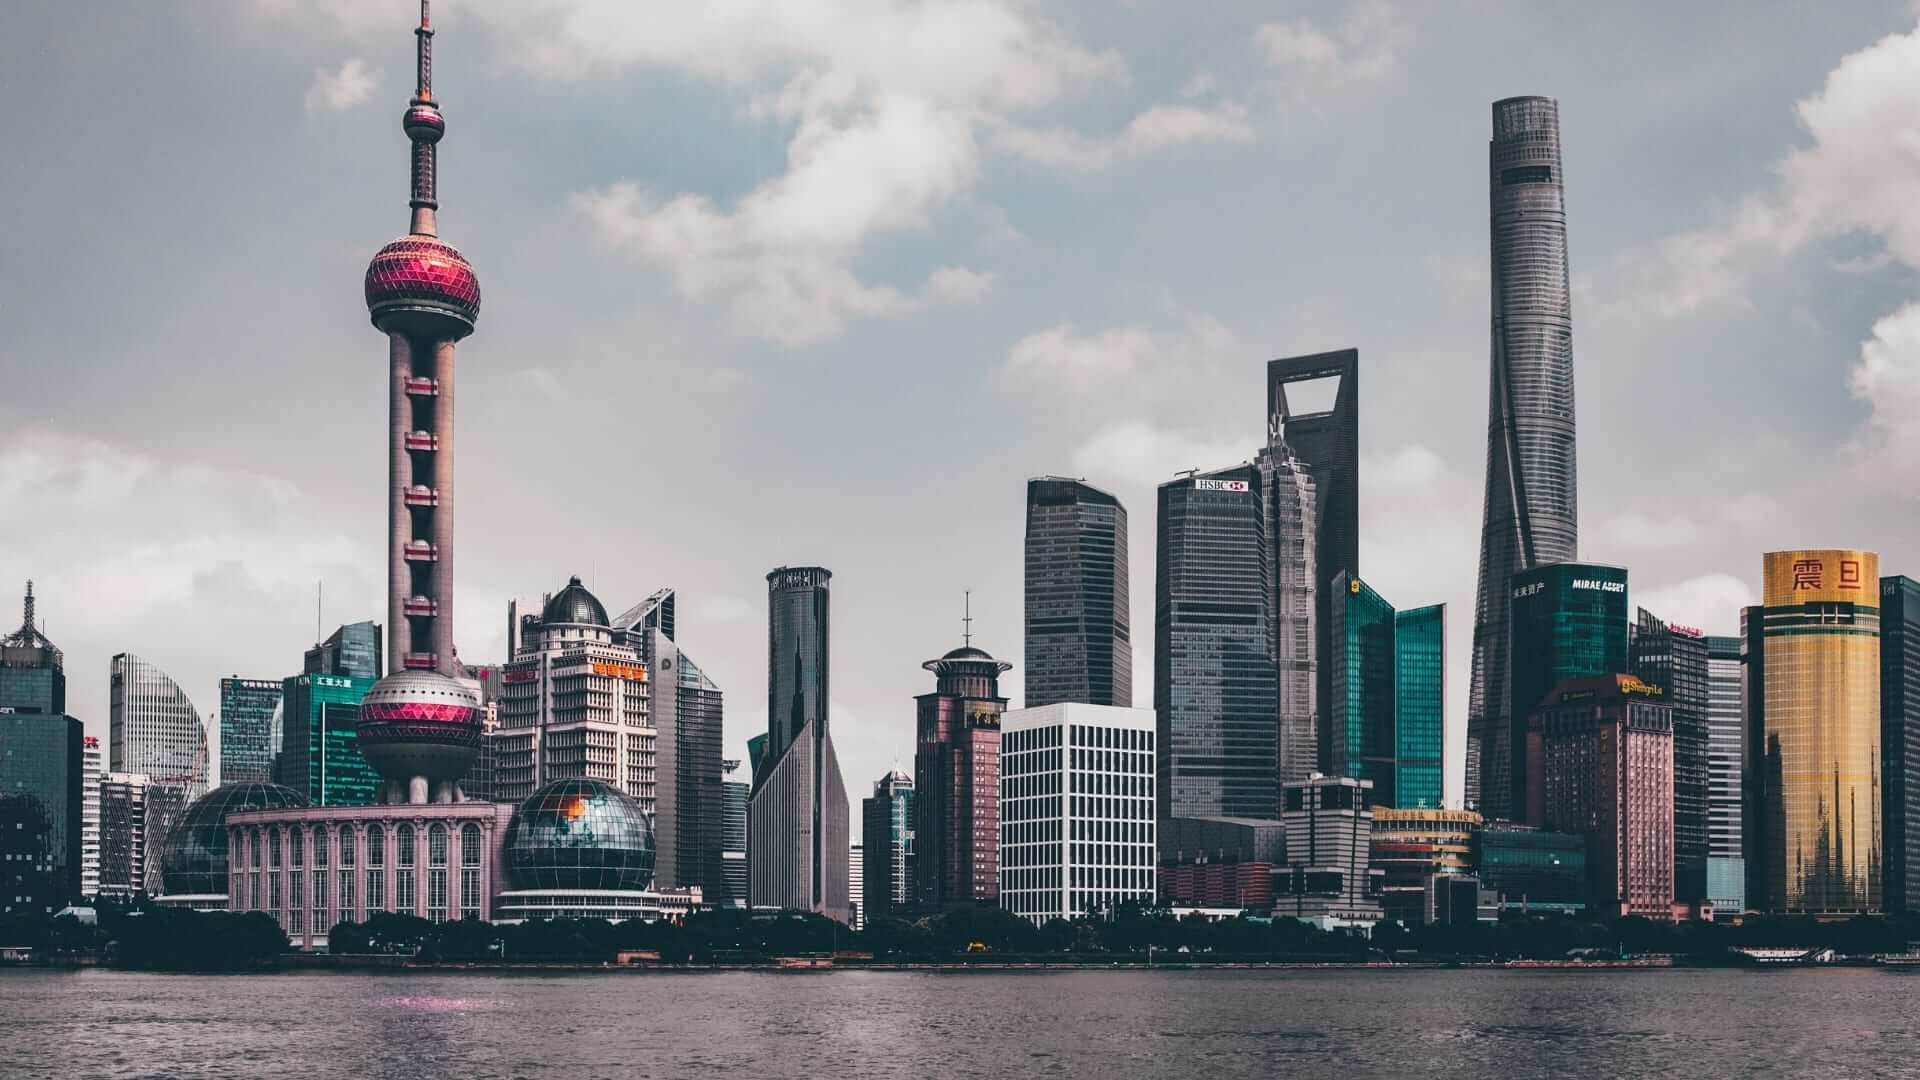 Buildings next to the water during daytime in Shanghai.